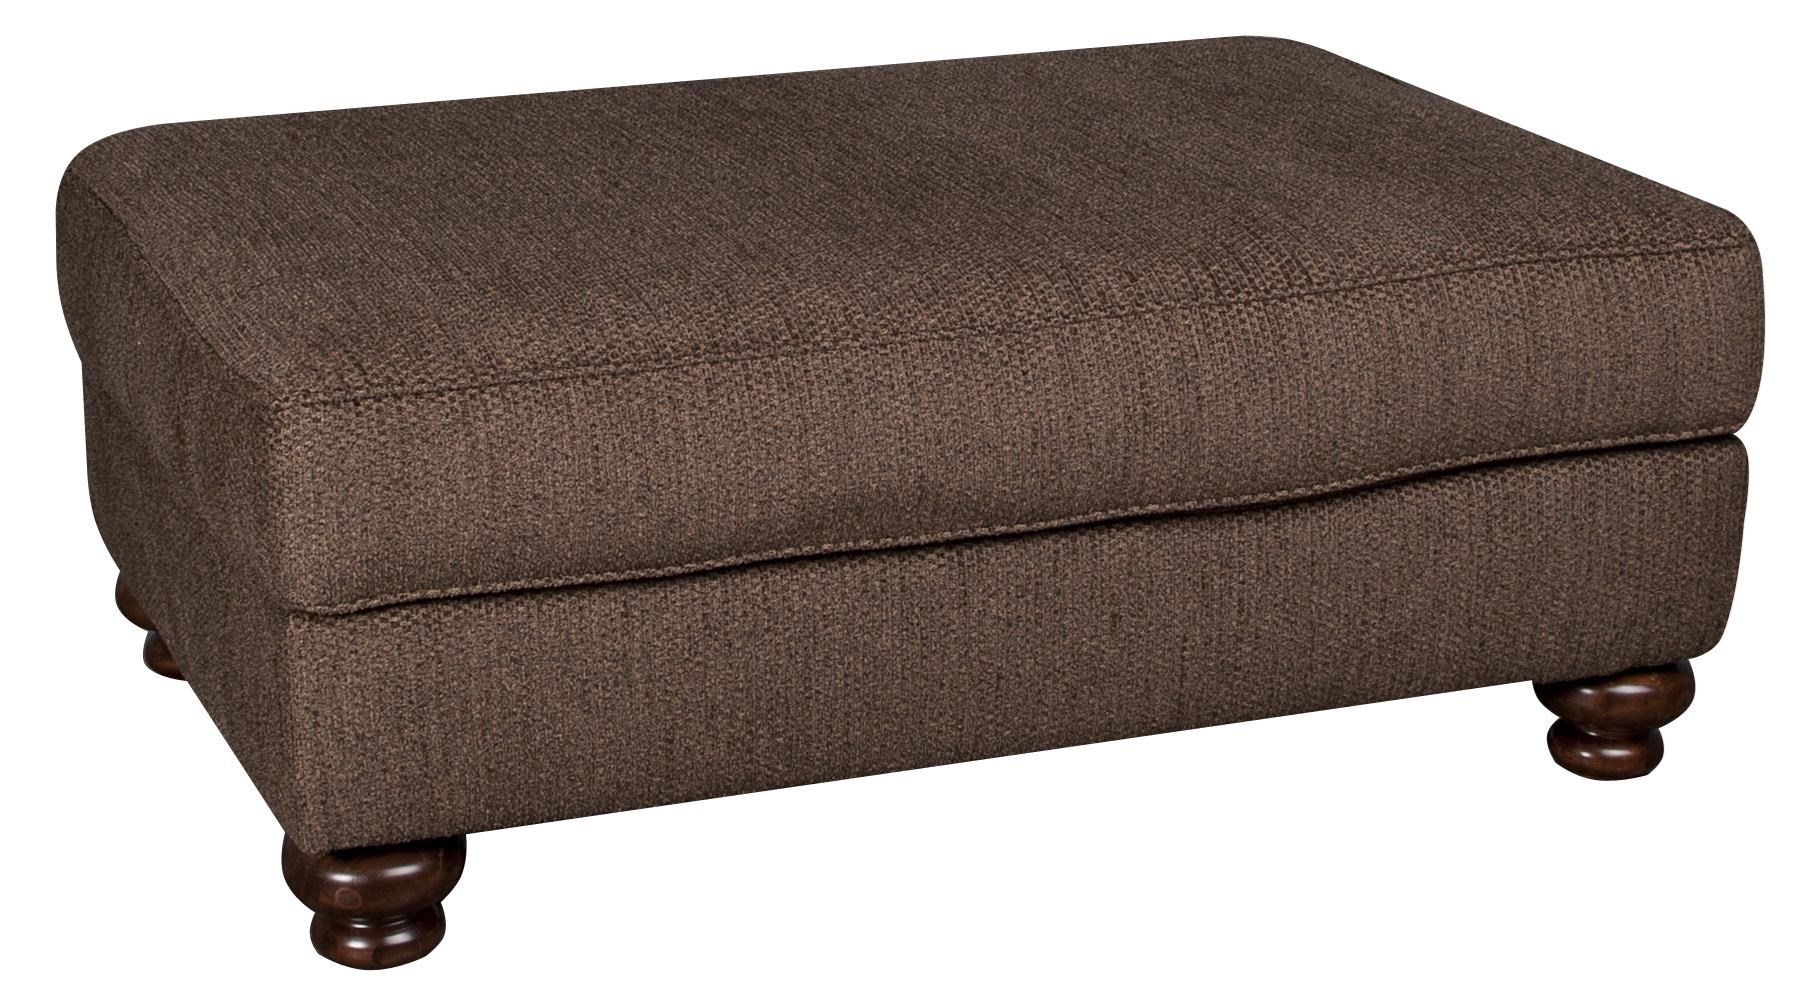 Elliston Place Kendall Kendall Ottoman - Item Number: 413958637